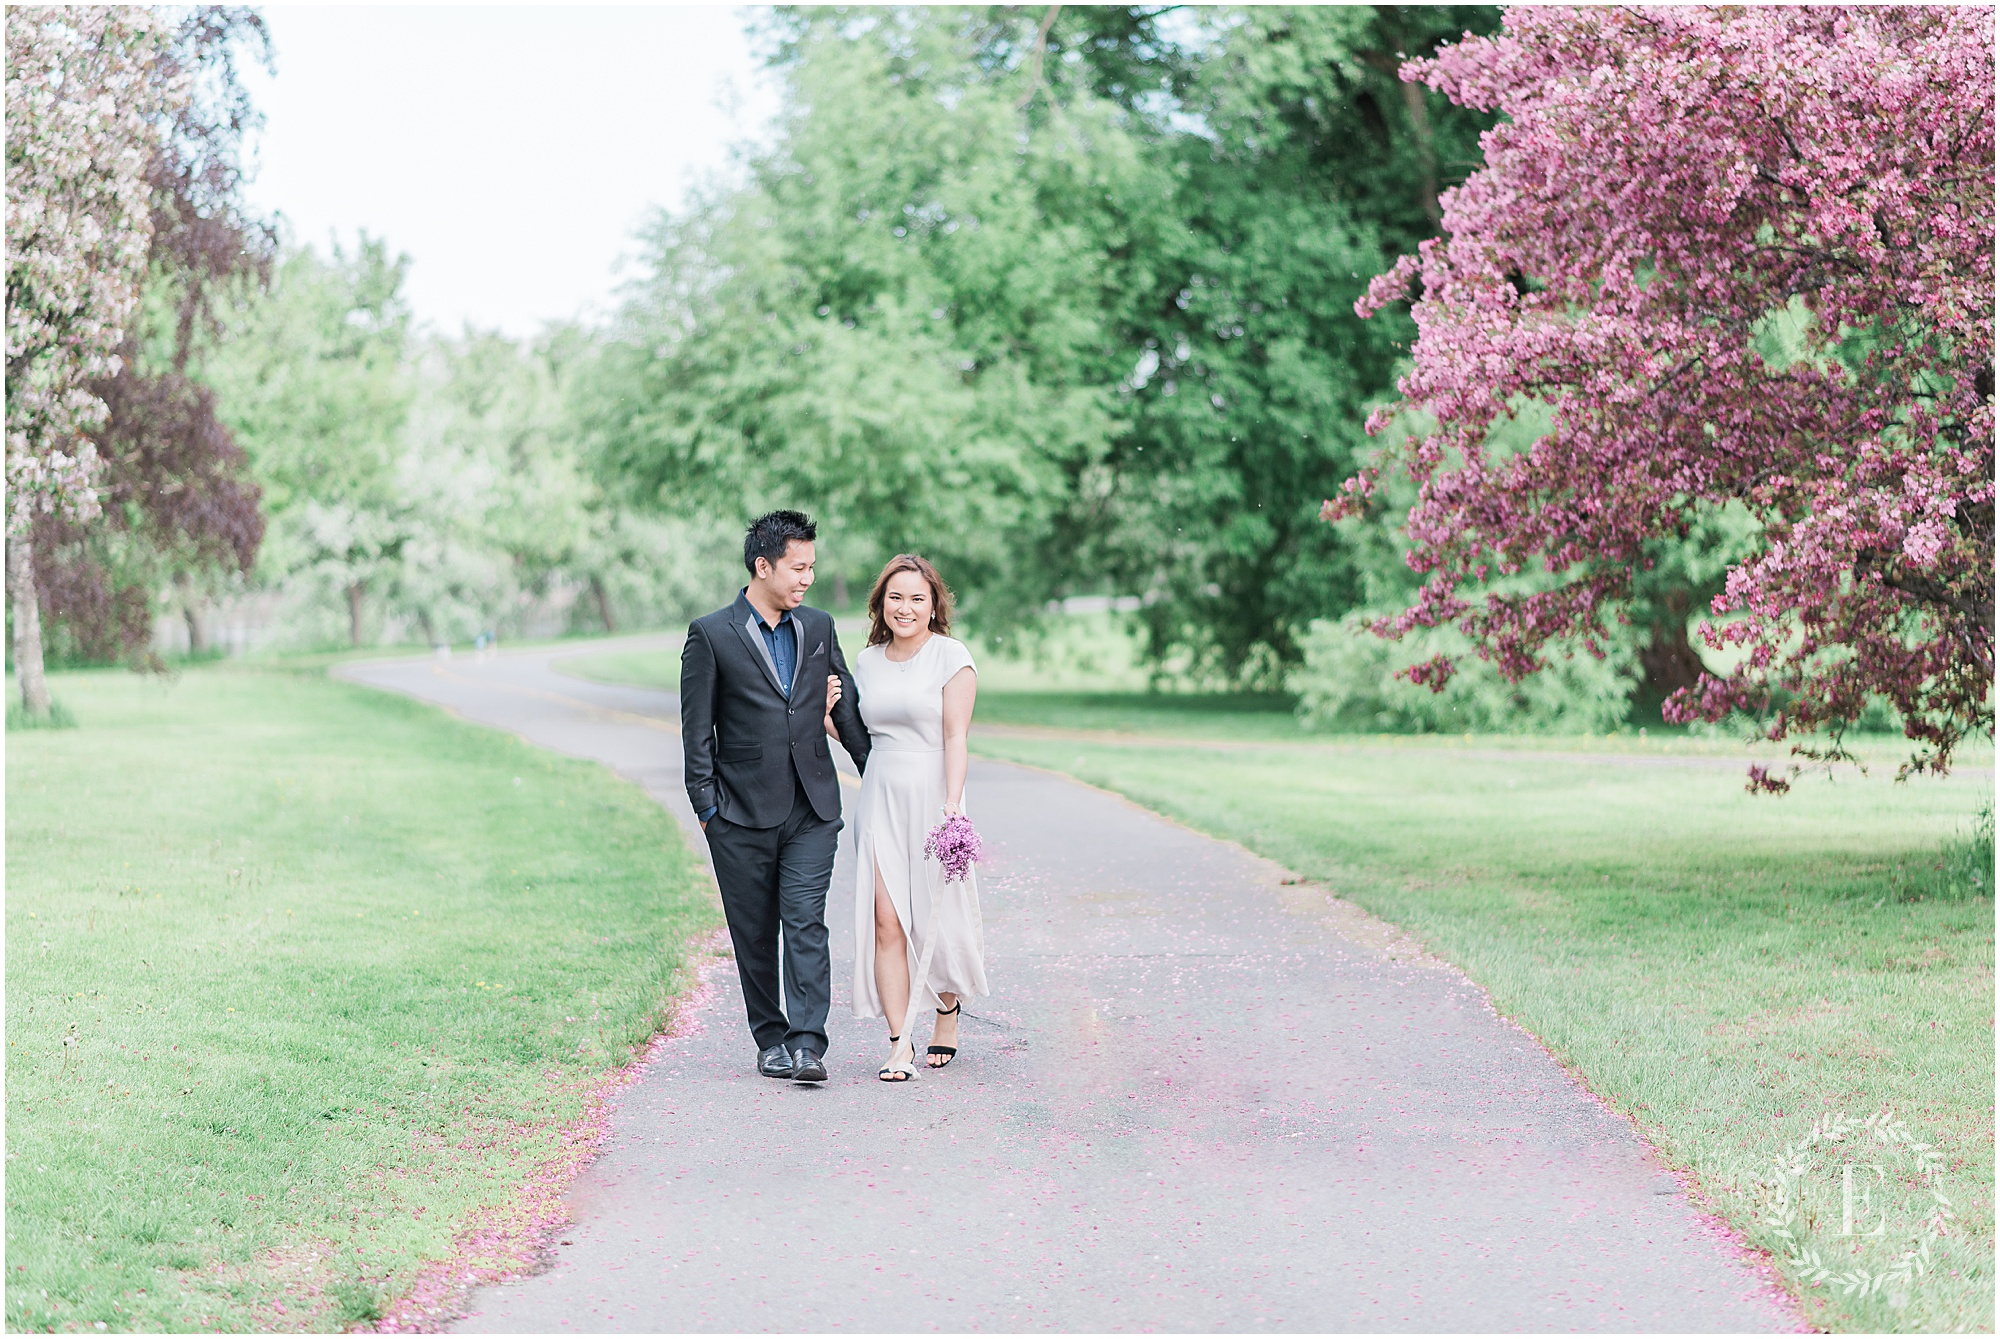 0119 Nhi and Andy blossom engagement - Arboretum - Ottawa- Photography by Emma.jpg